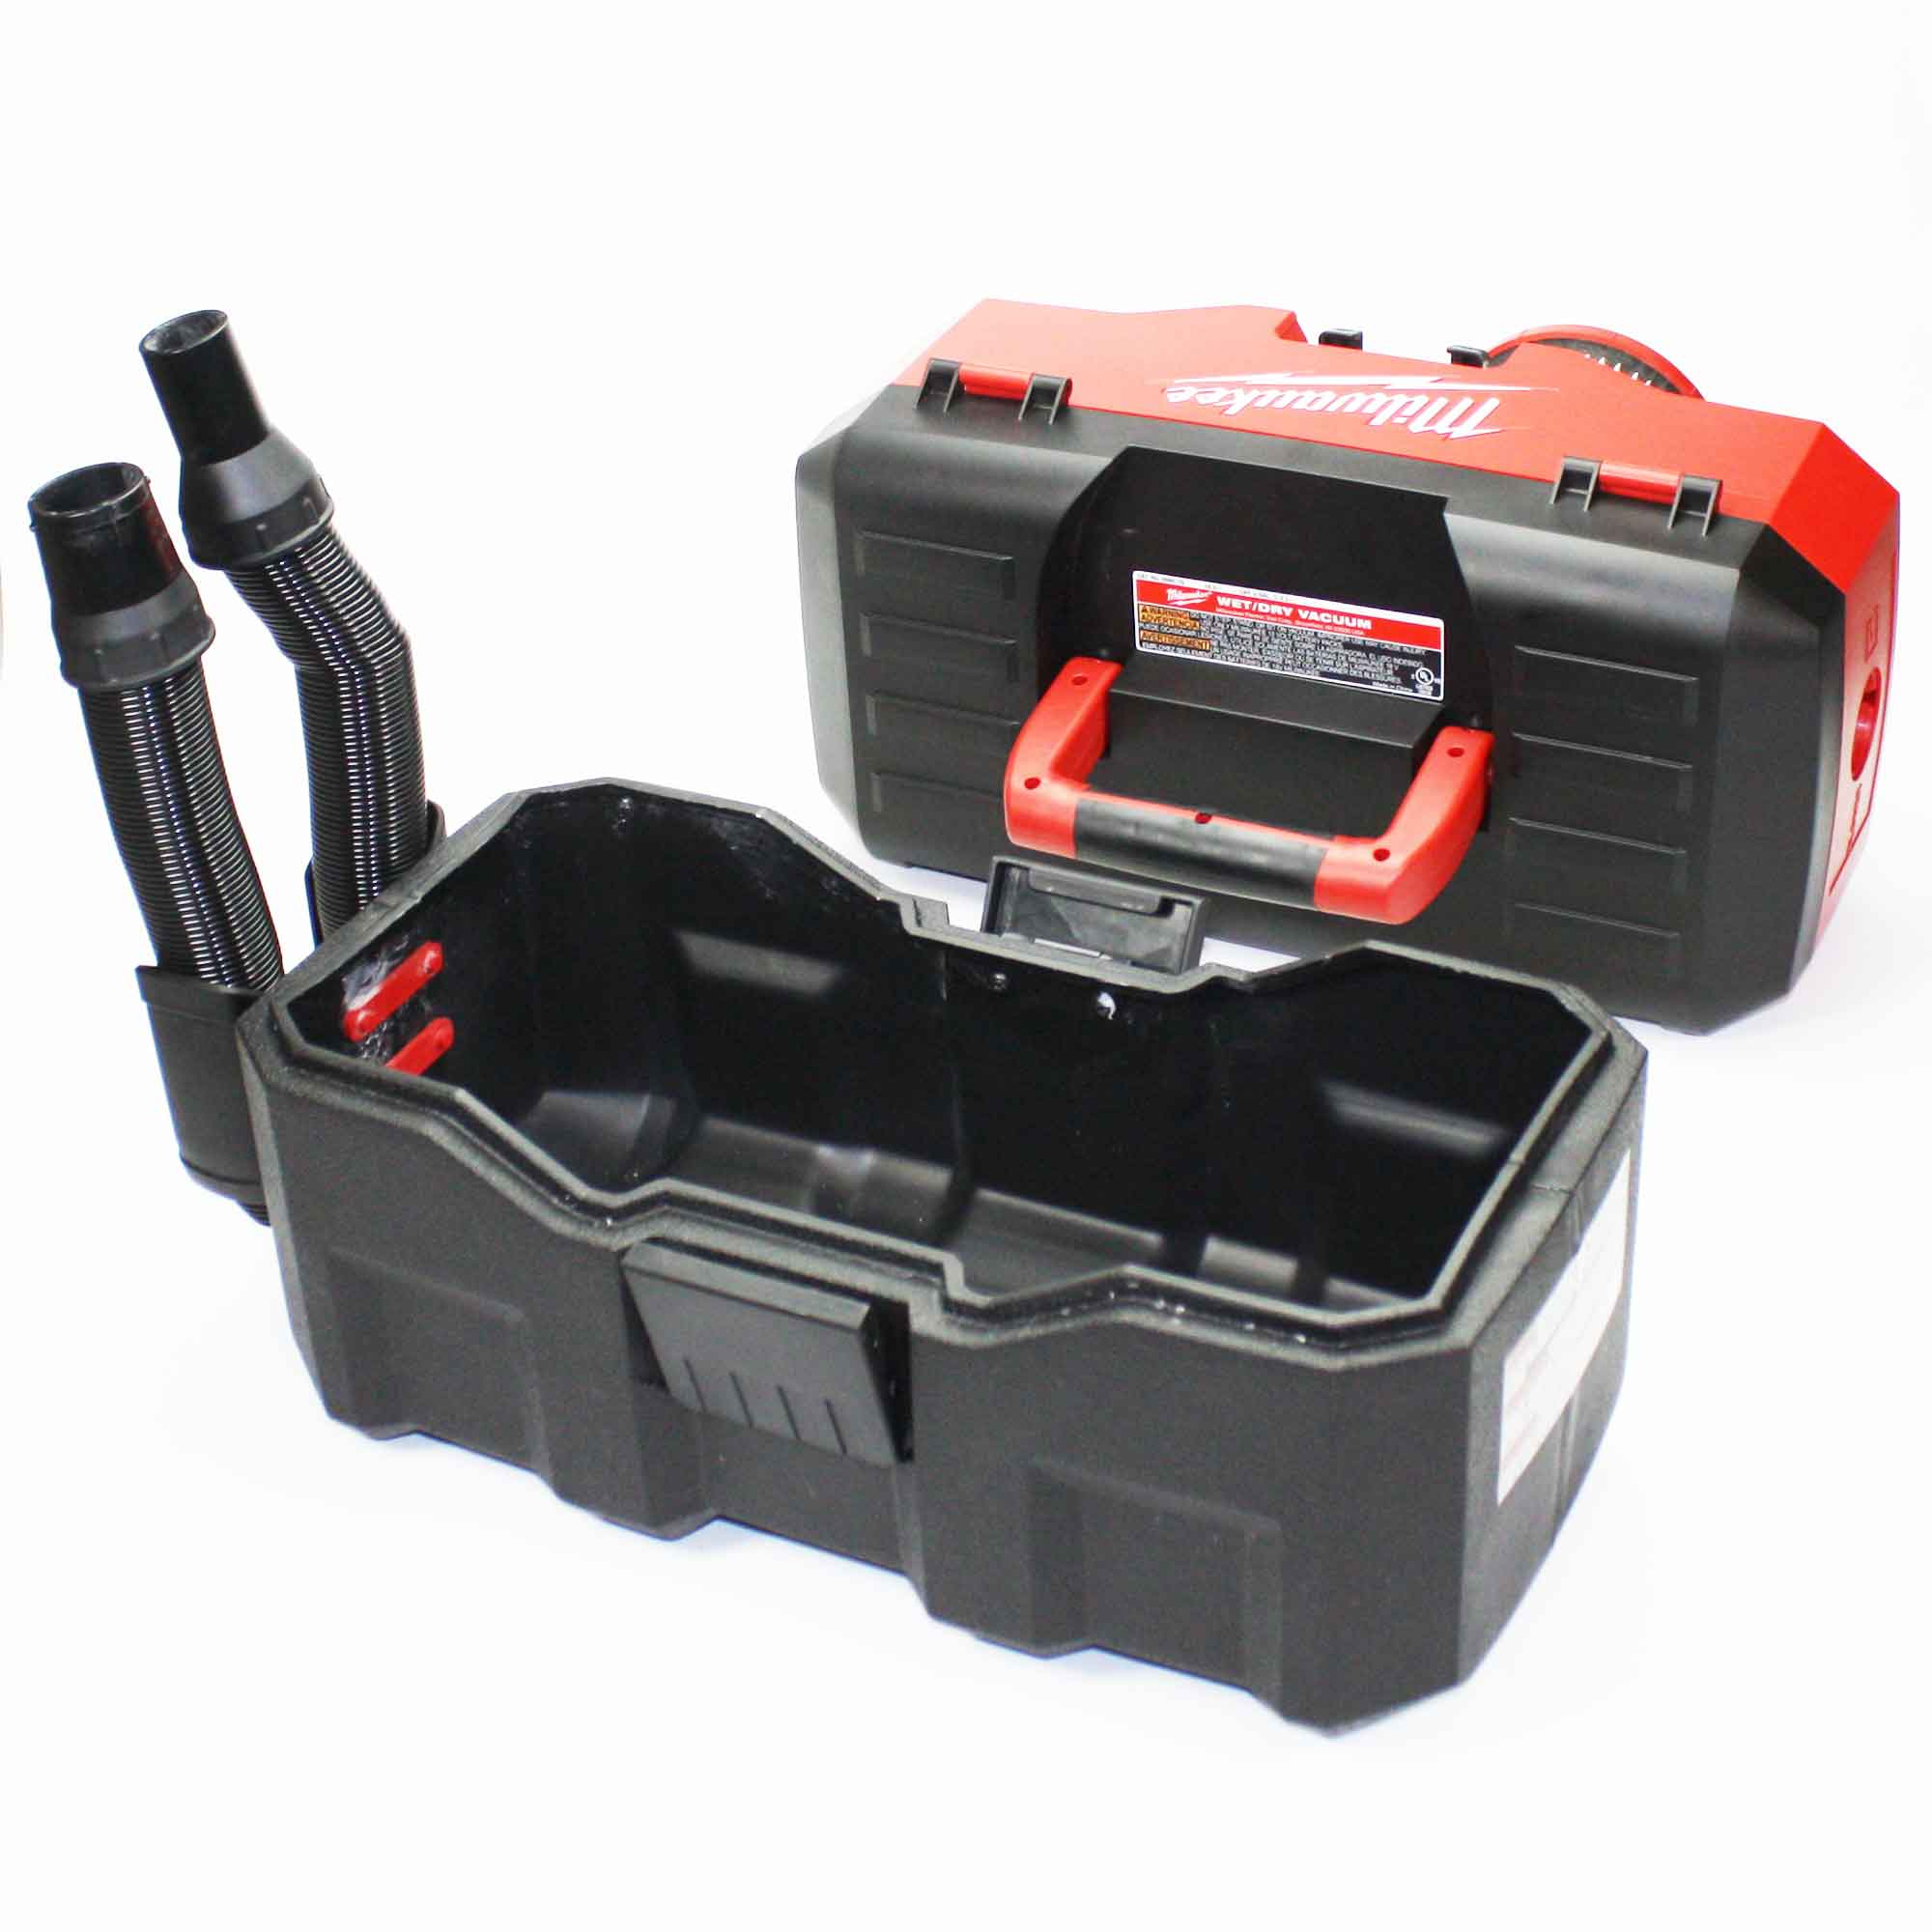 Why The Milwaukee M18 Wet Dry Vacuum Is The Best Deal!